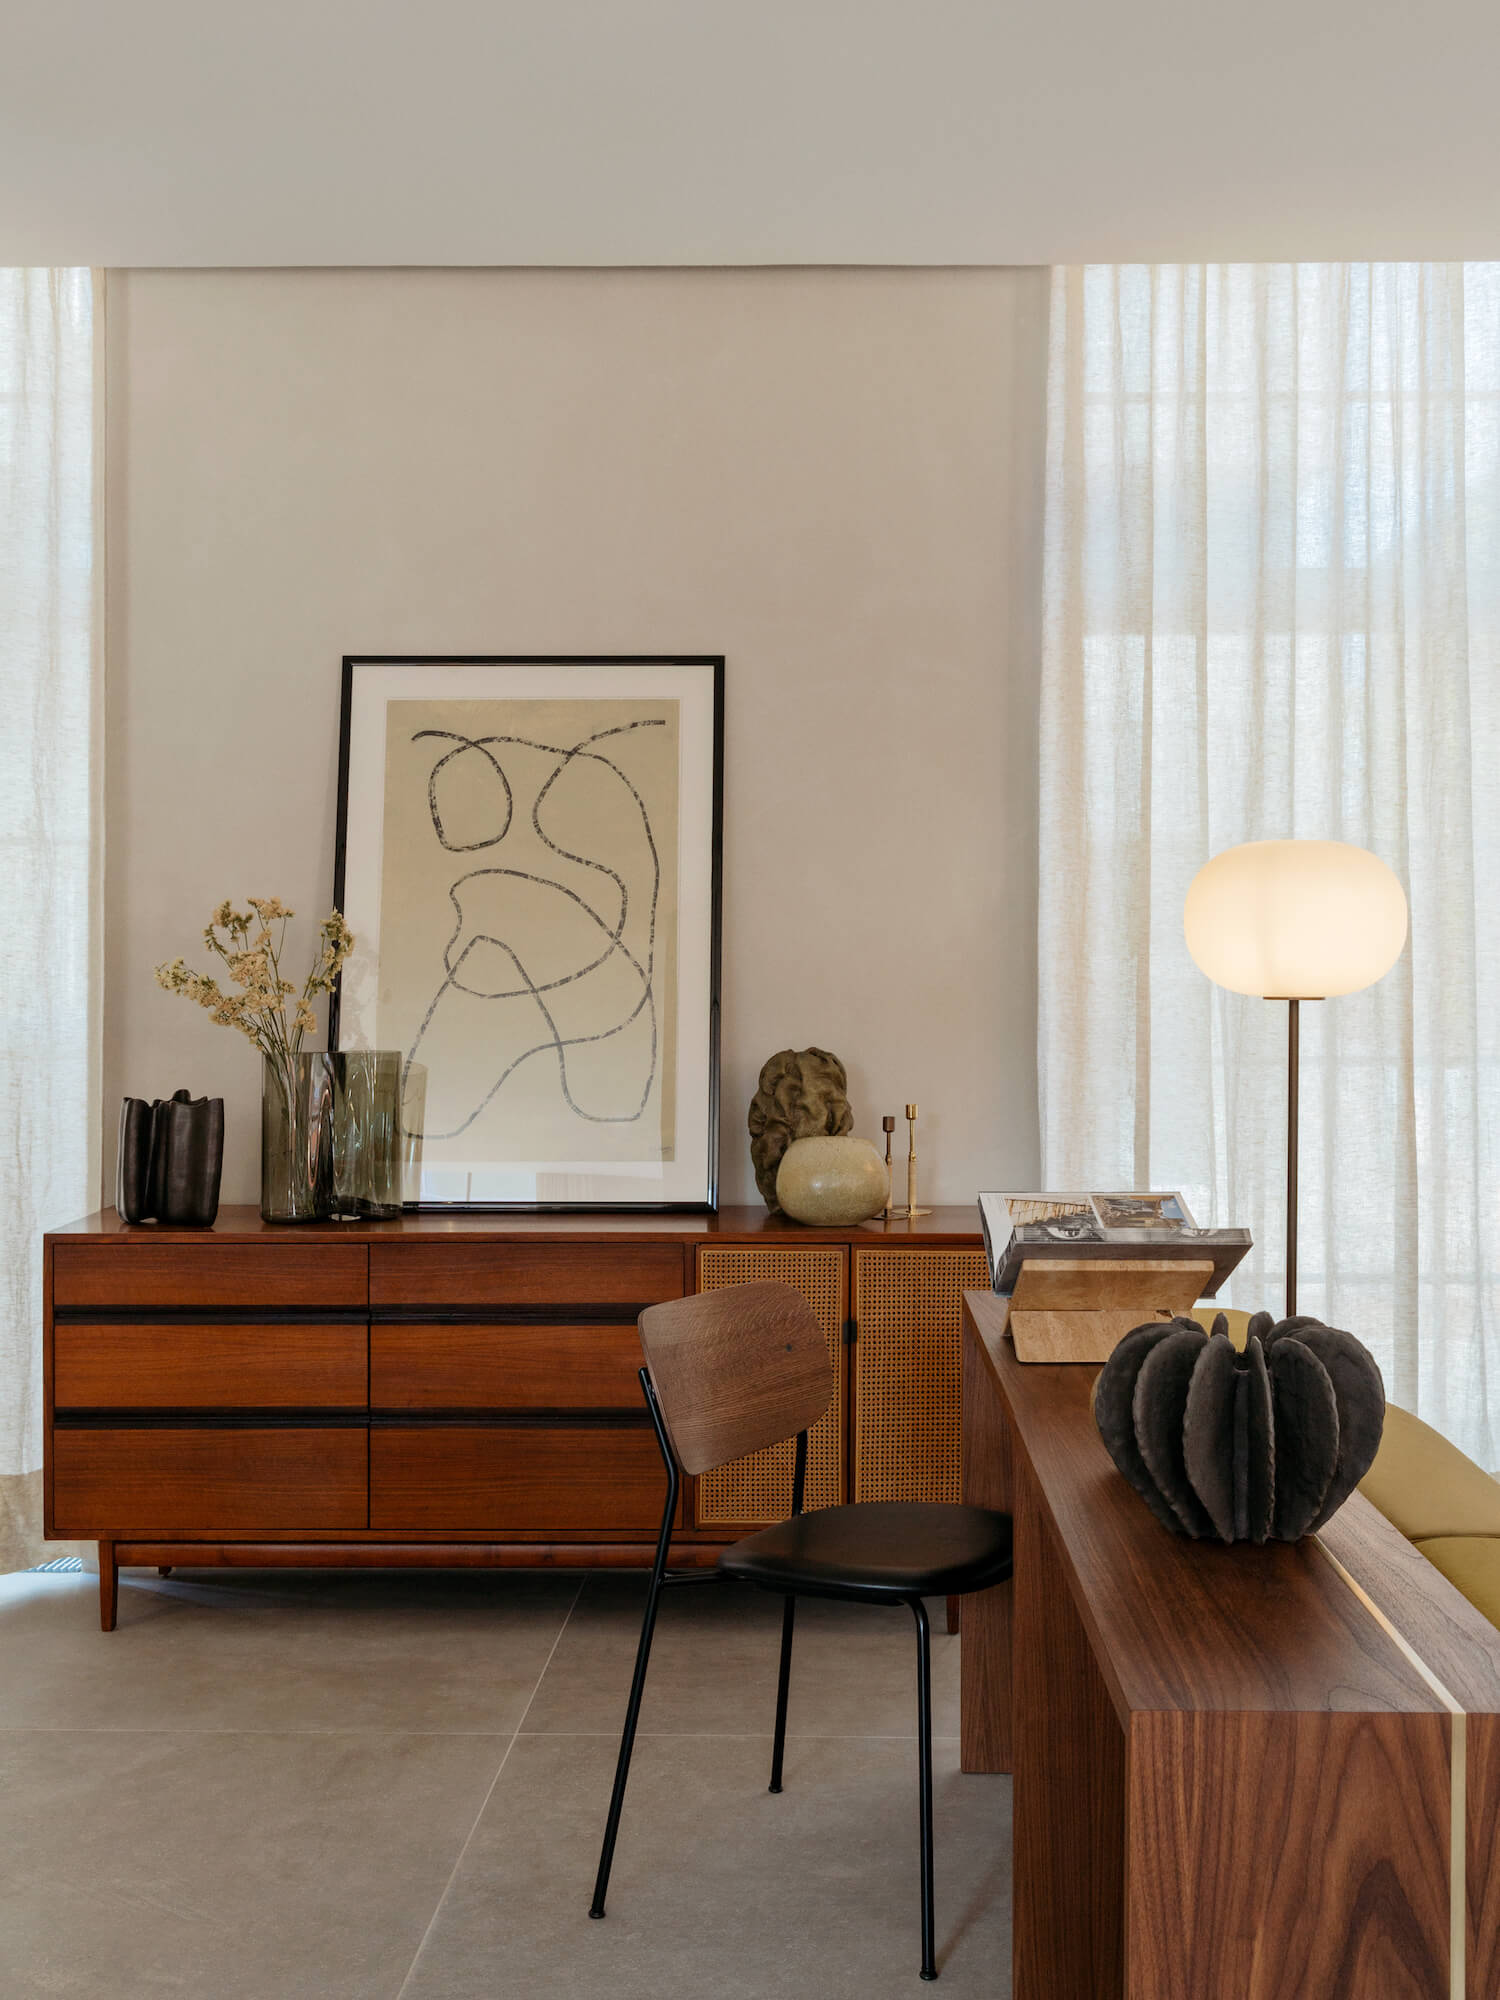 Image of: Mid Century Modern Furniture Everything You Need To Get The Look Bobby Berk